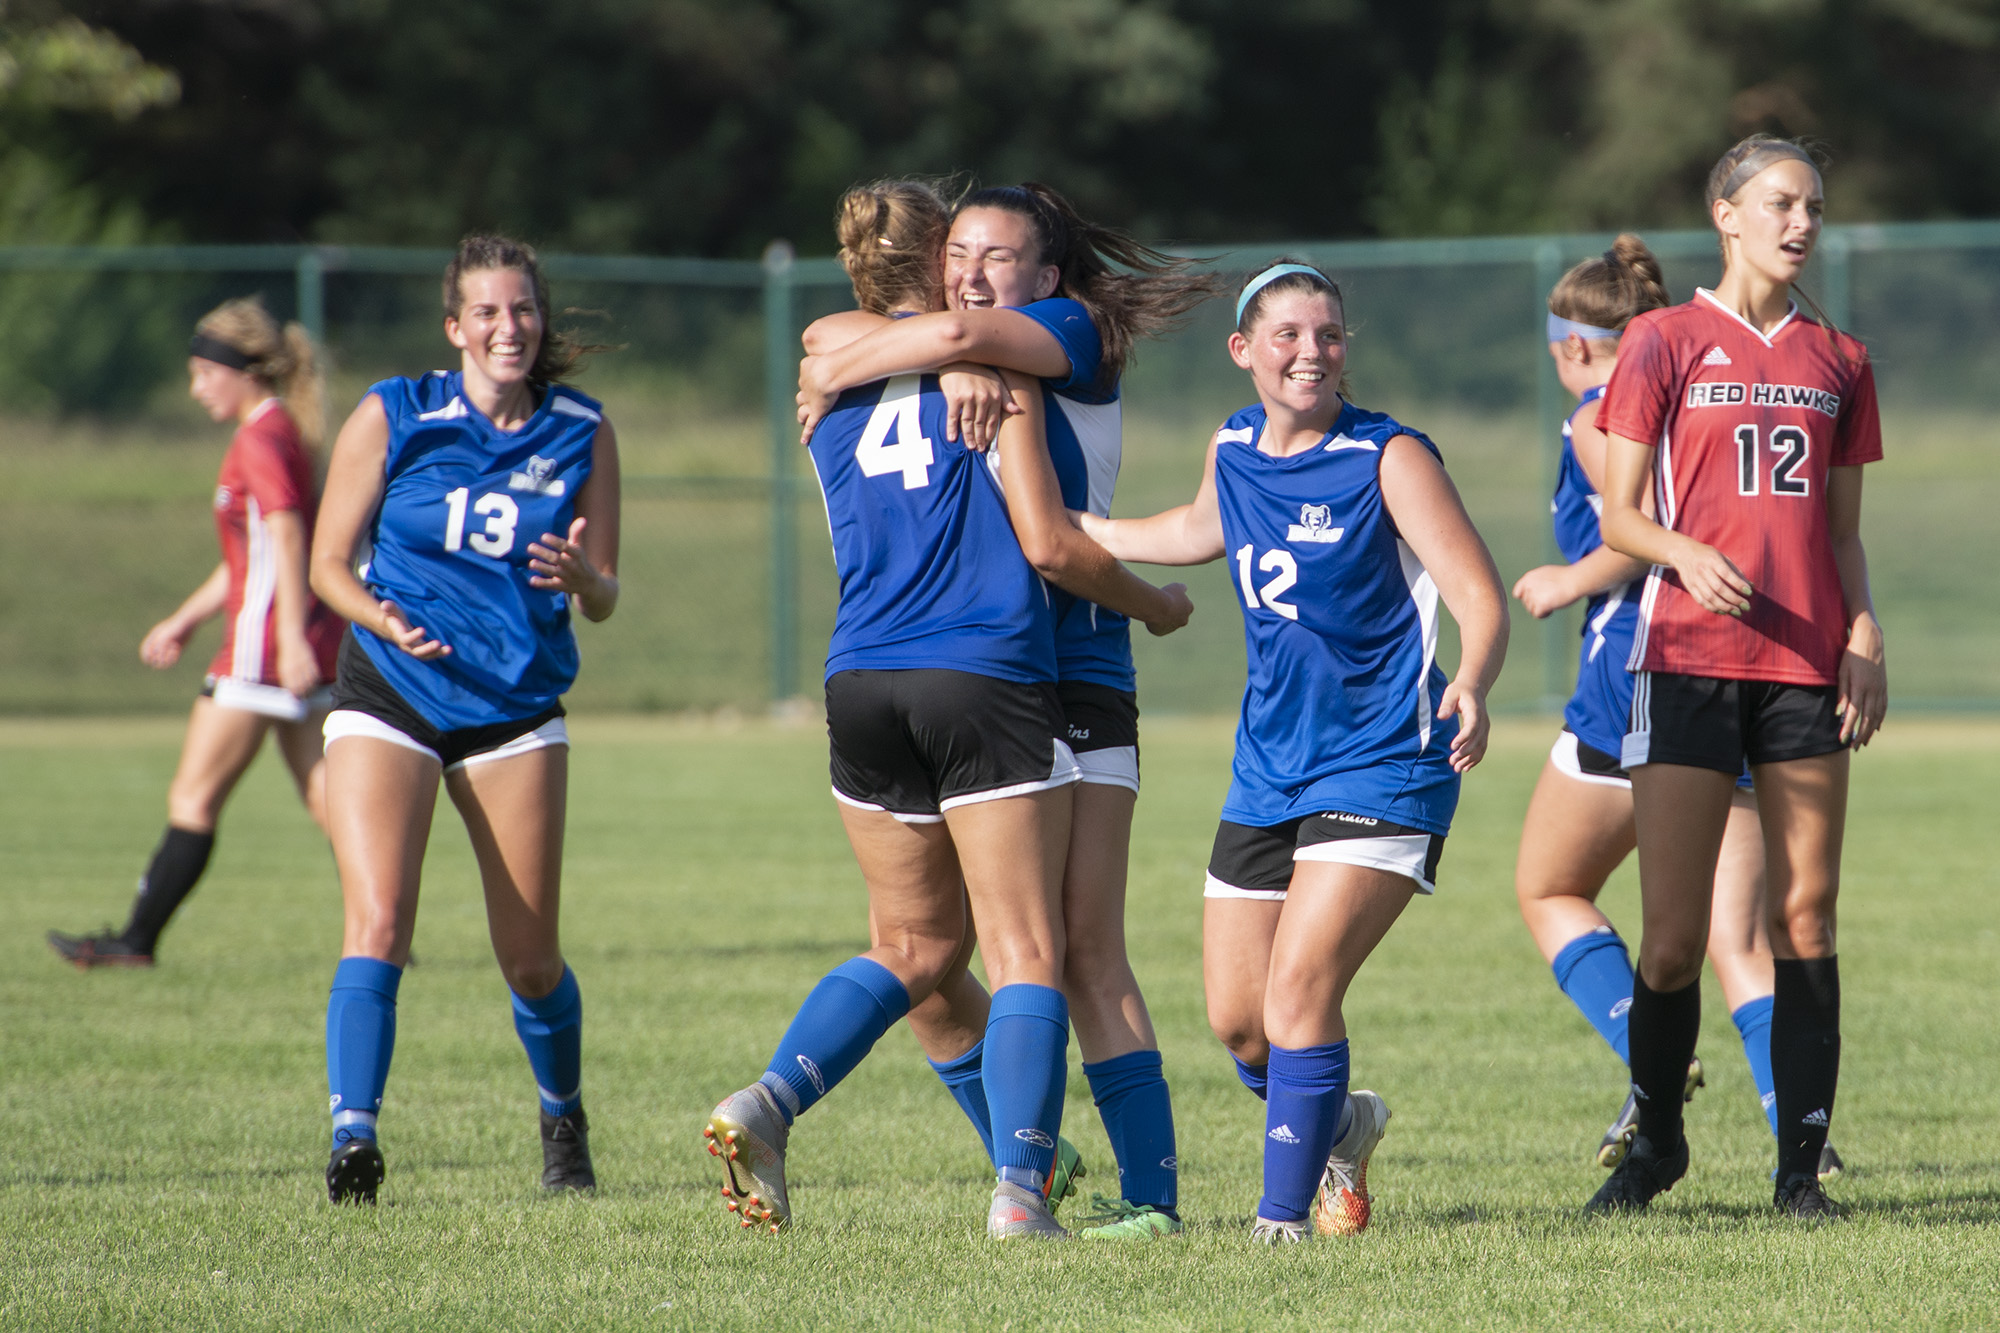 Members of the women's soccer team celebrate after scoring a goal.